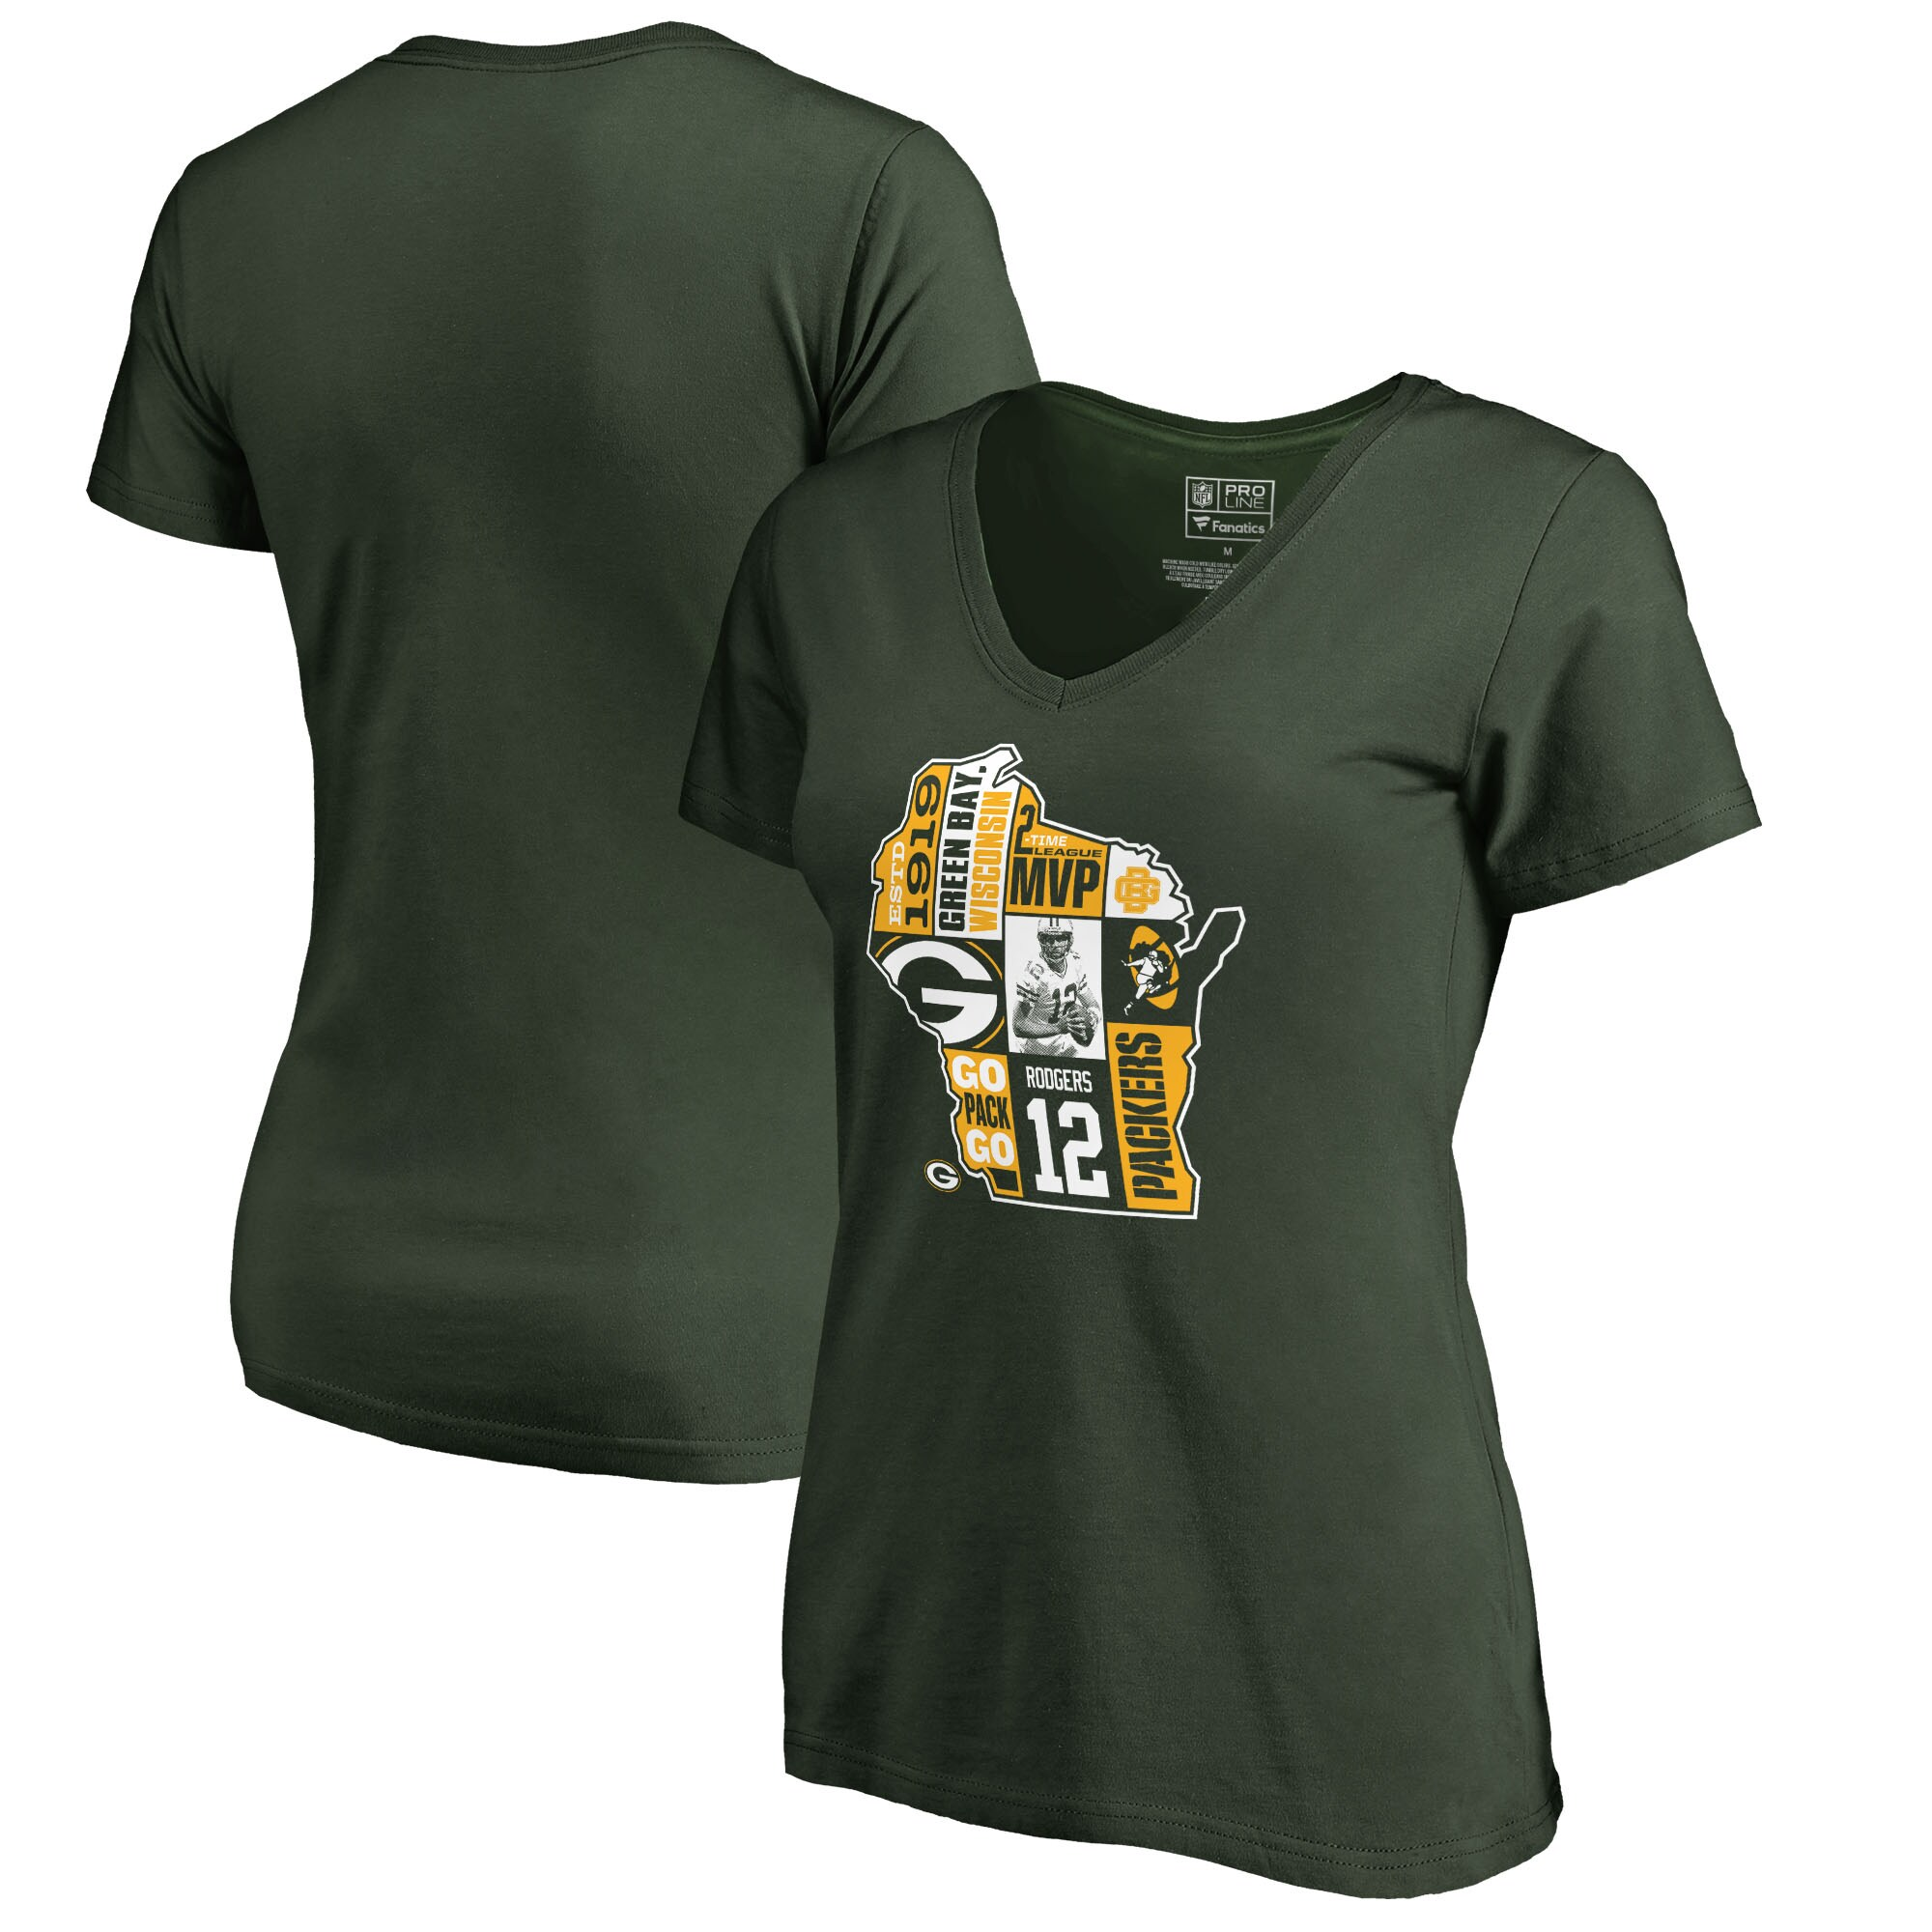 Aaron Rodgers Green Bay Packers NFL Pro Line by Fanatics Branded Women's Player State T-Shirt - Green